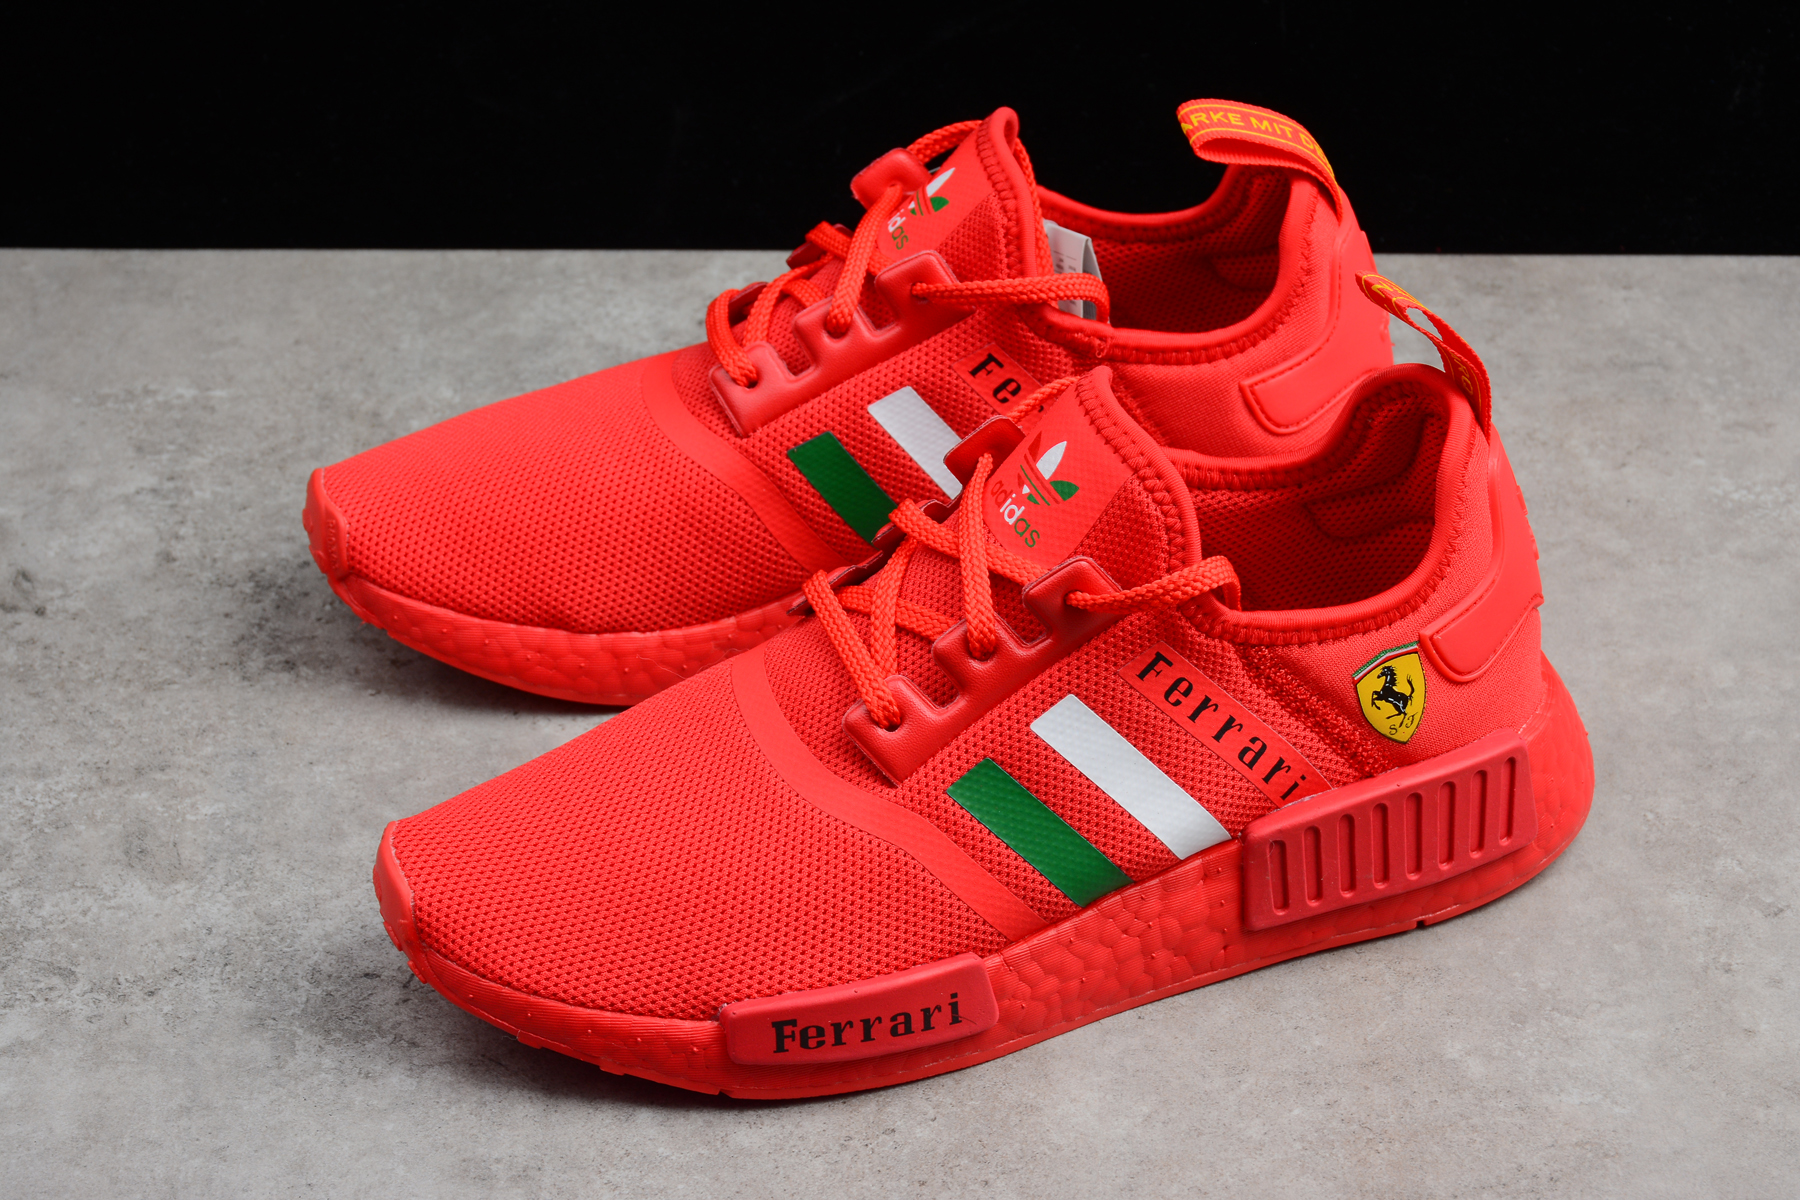 550cea055ee Fashion Adidas NMD Boost Ferrari red women men shoes on Storenvy